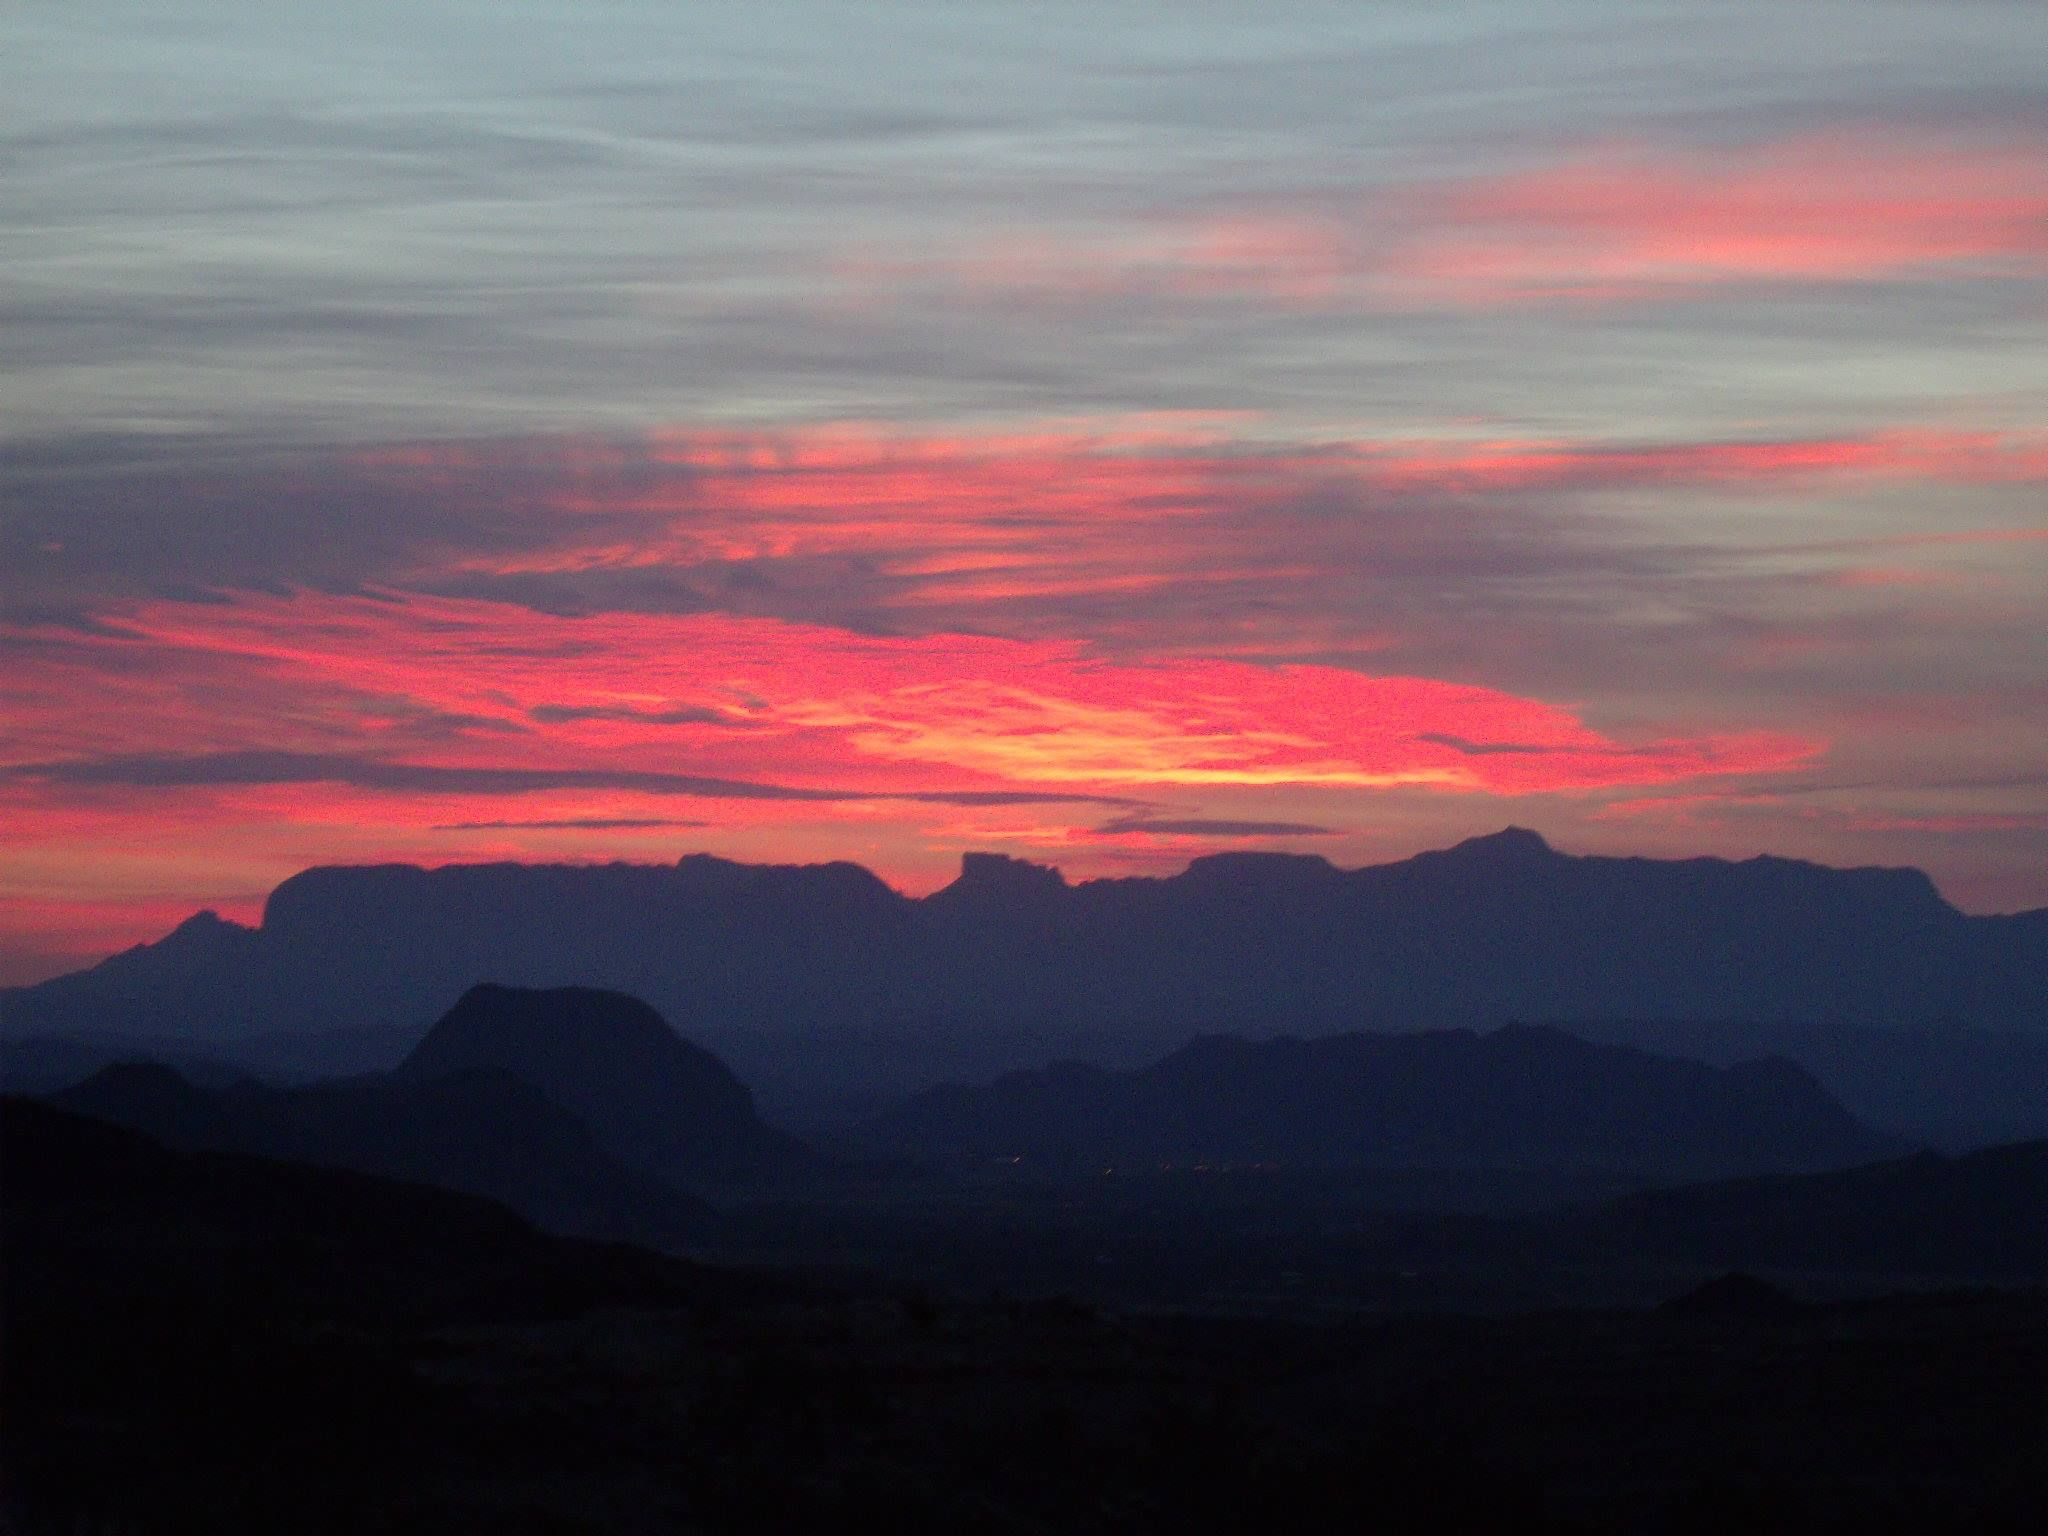 Sunset over Big Bend National Park by Jon Peacock